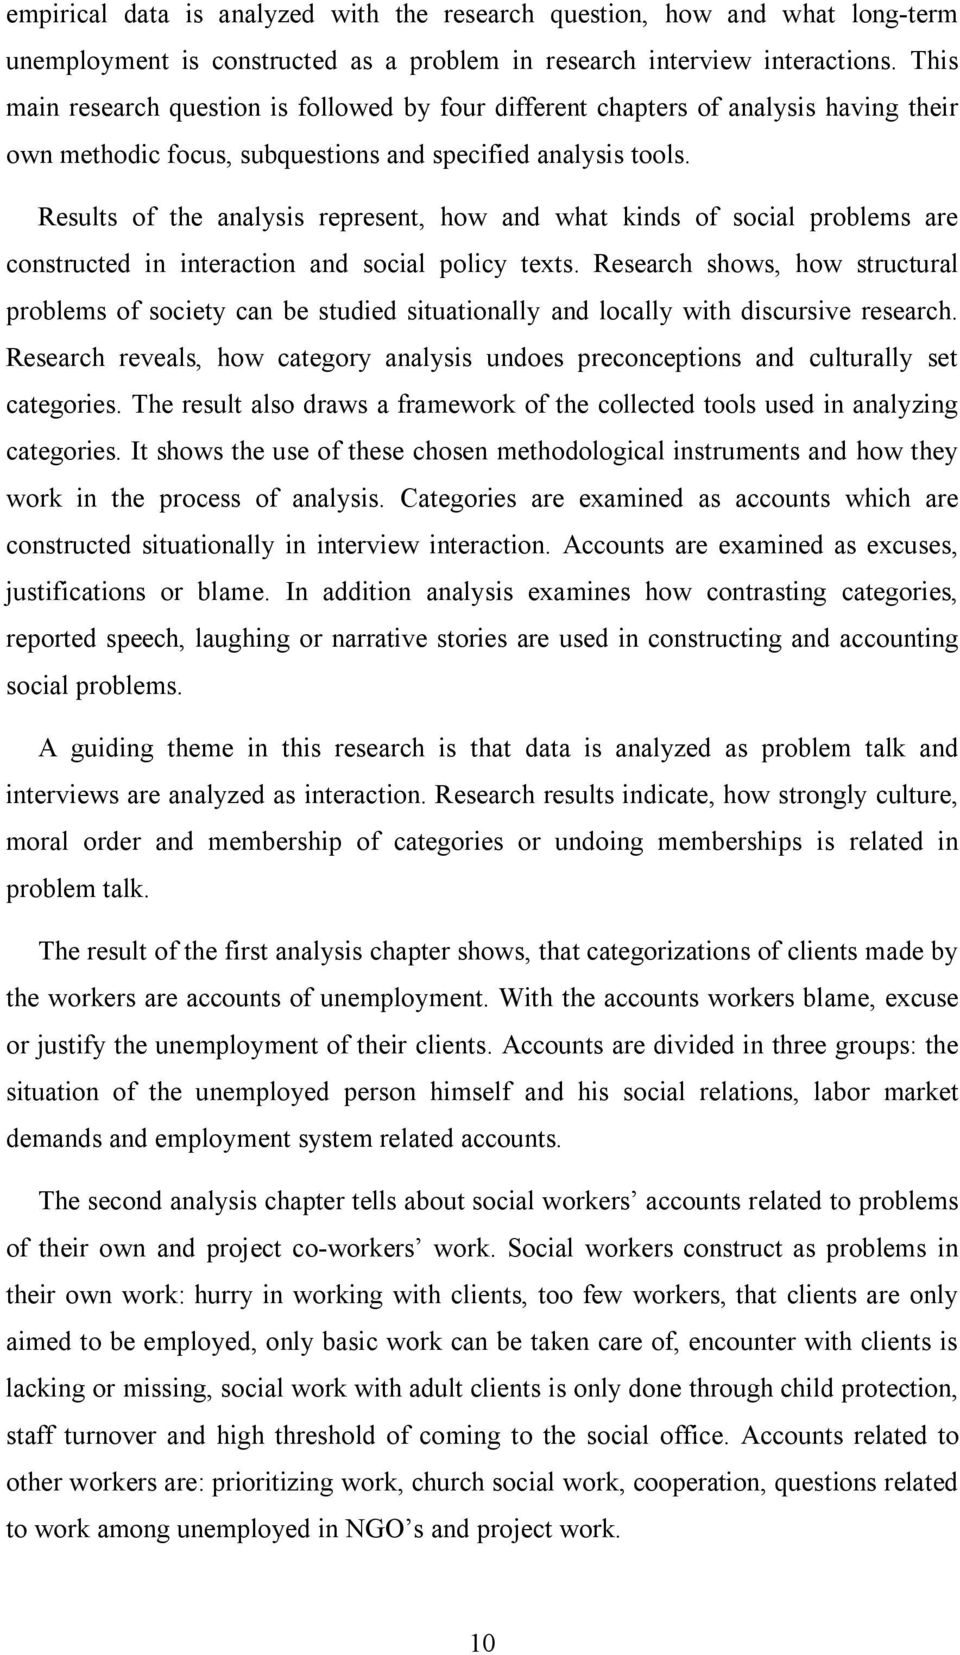 Results of the analysis represent, how and what kinds of social problems are constructed in interaction and social policy texts.